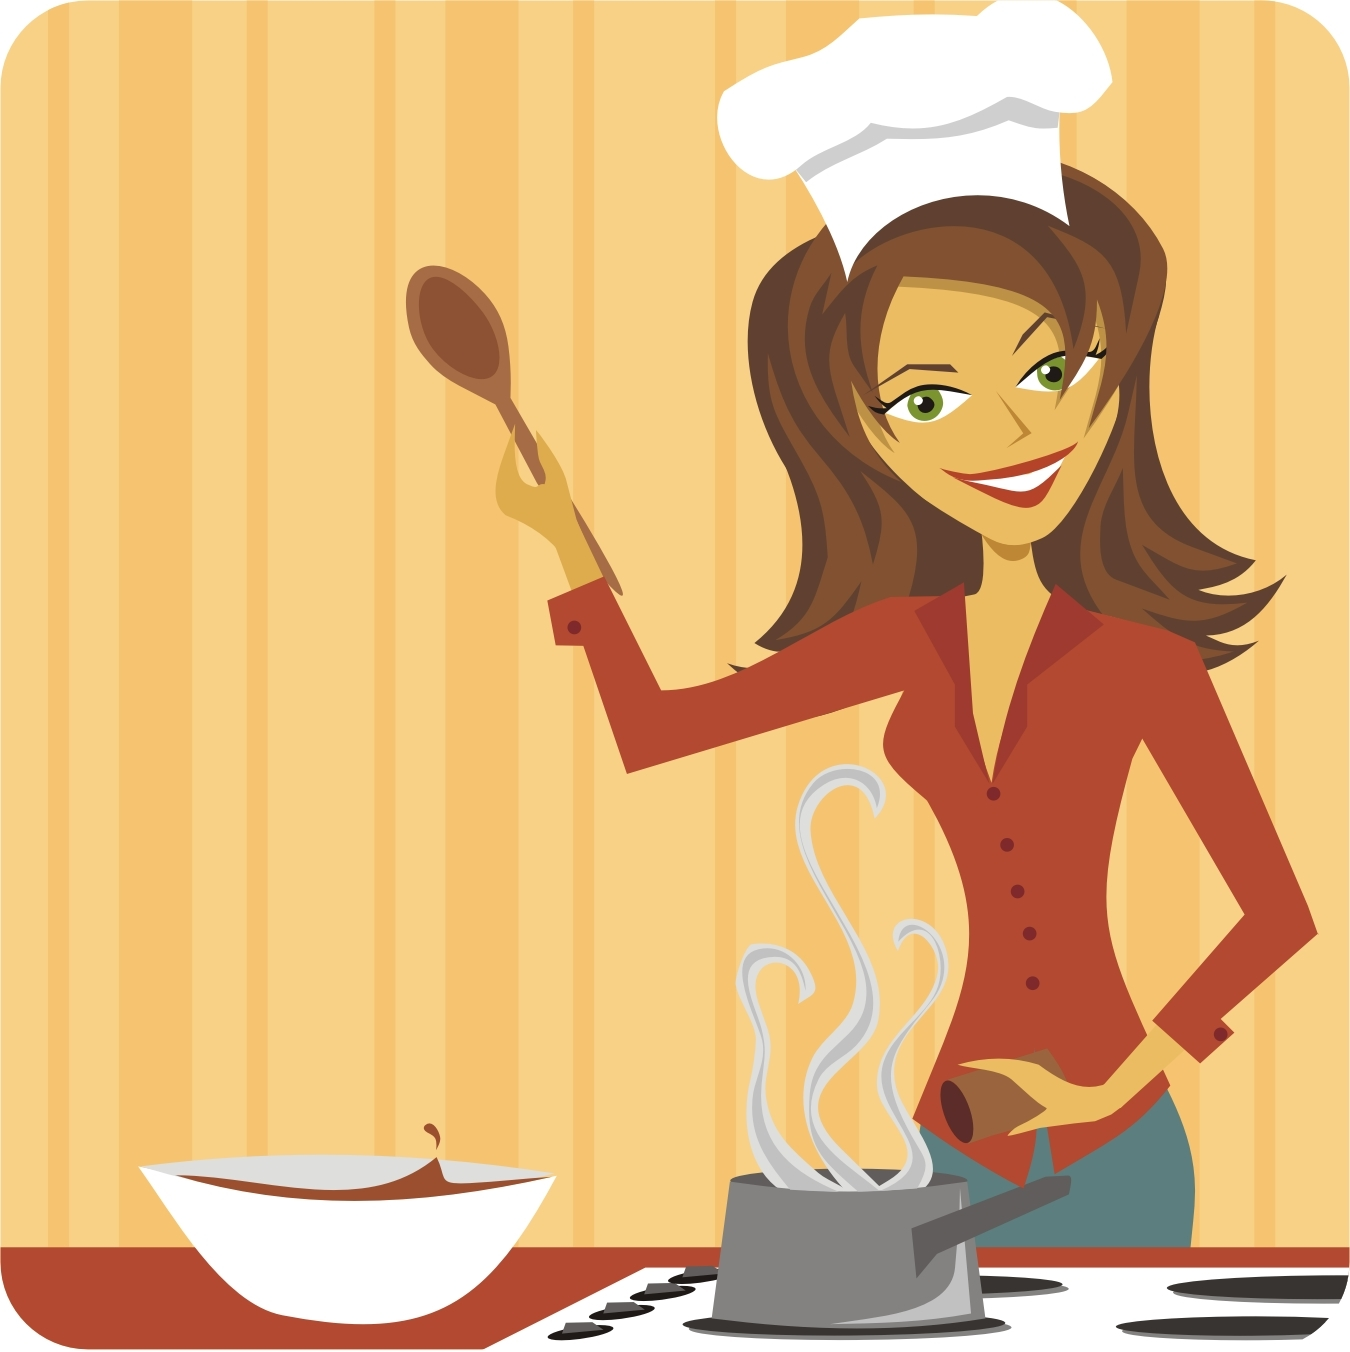 U S Cooking: Journey To U.S.A: His Post-How To Be A Good Husband-chef